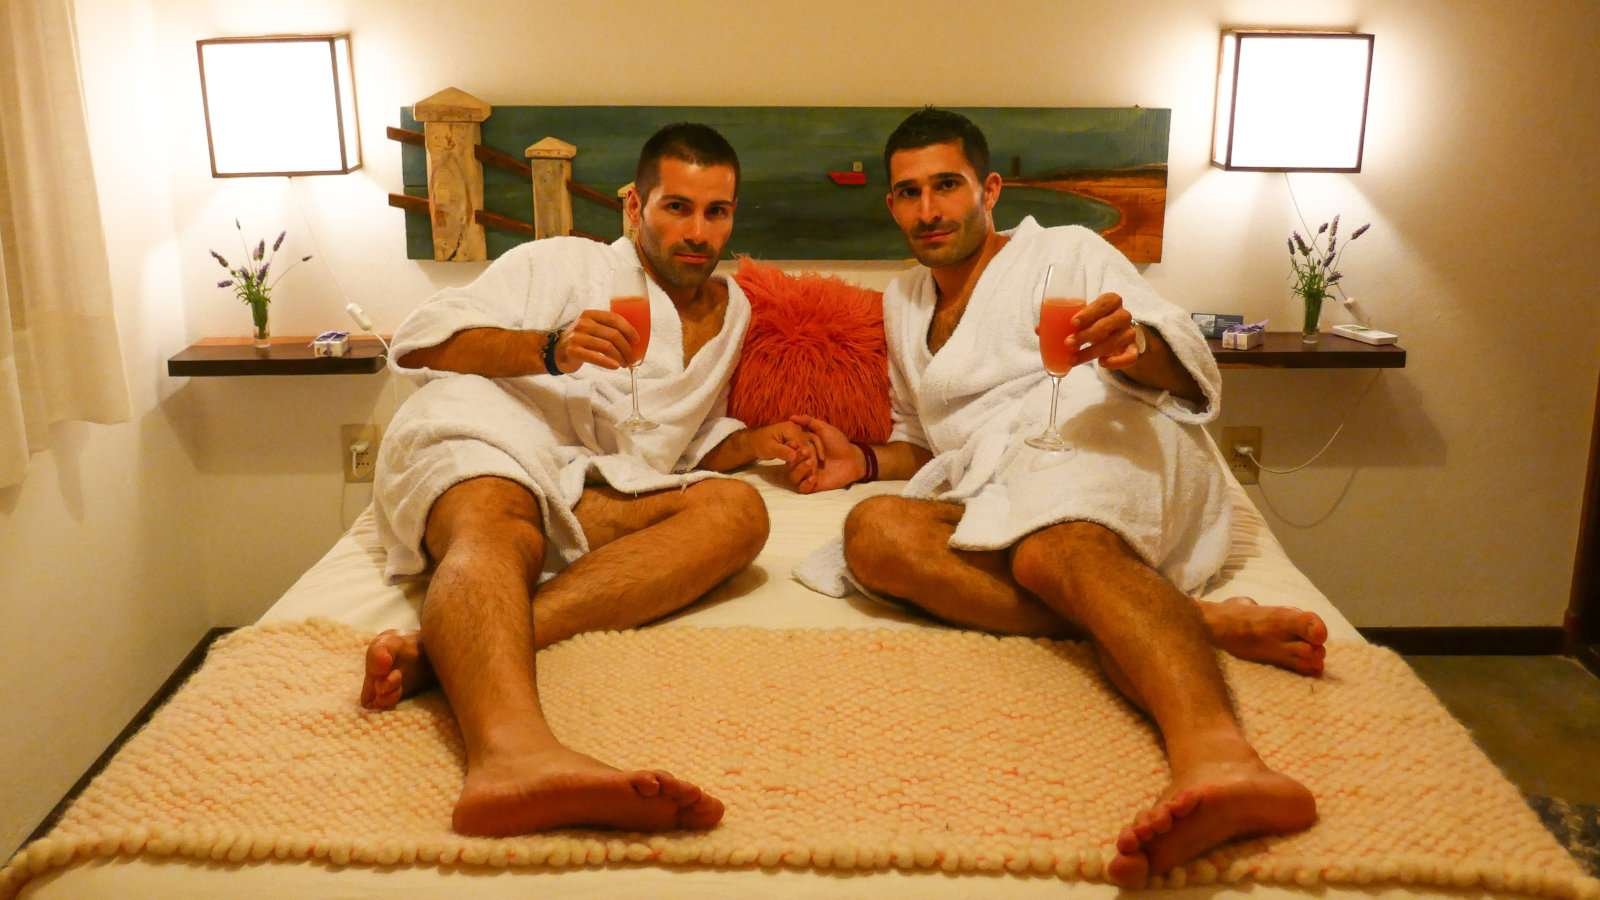 Looking for gay accommodation is a top travel safety tip for gay couples traveling